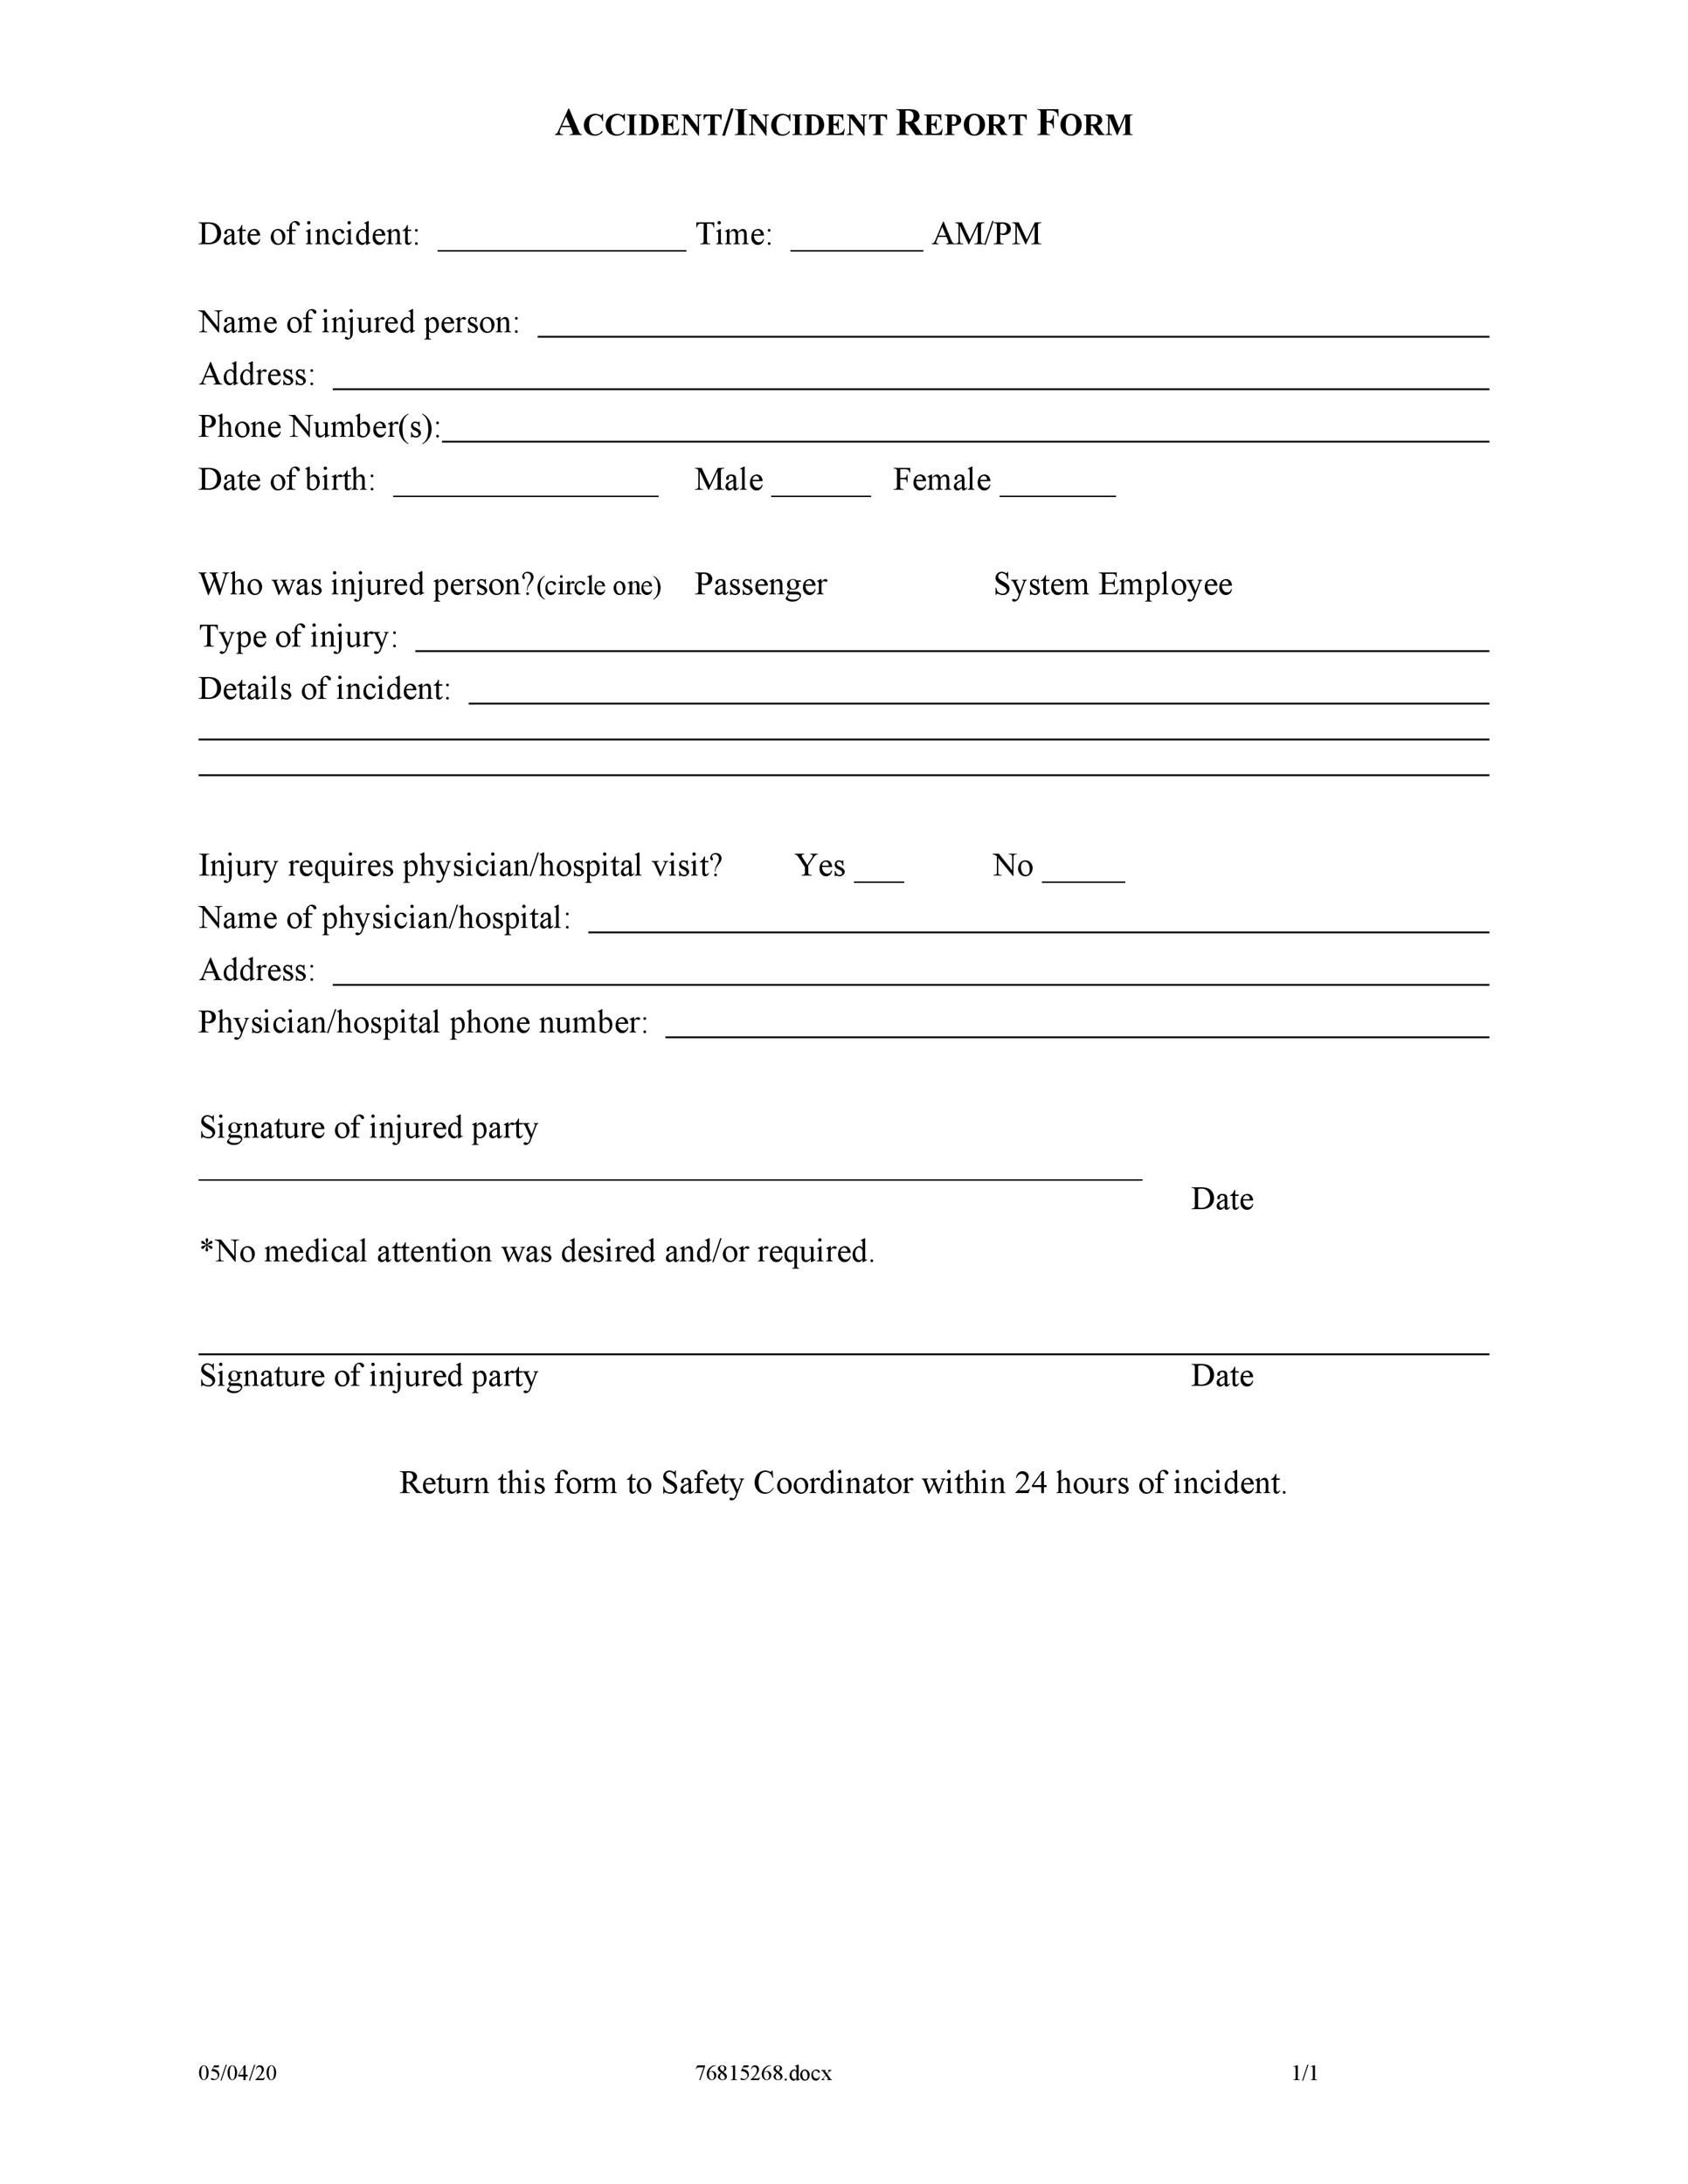 006 Wonderful Workplace Incident Report Form Template Nsw High Definition Full